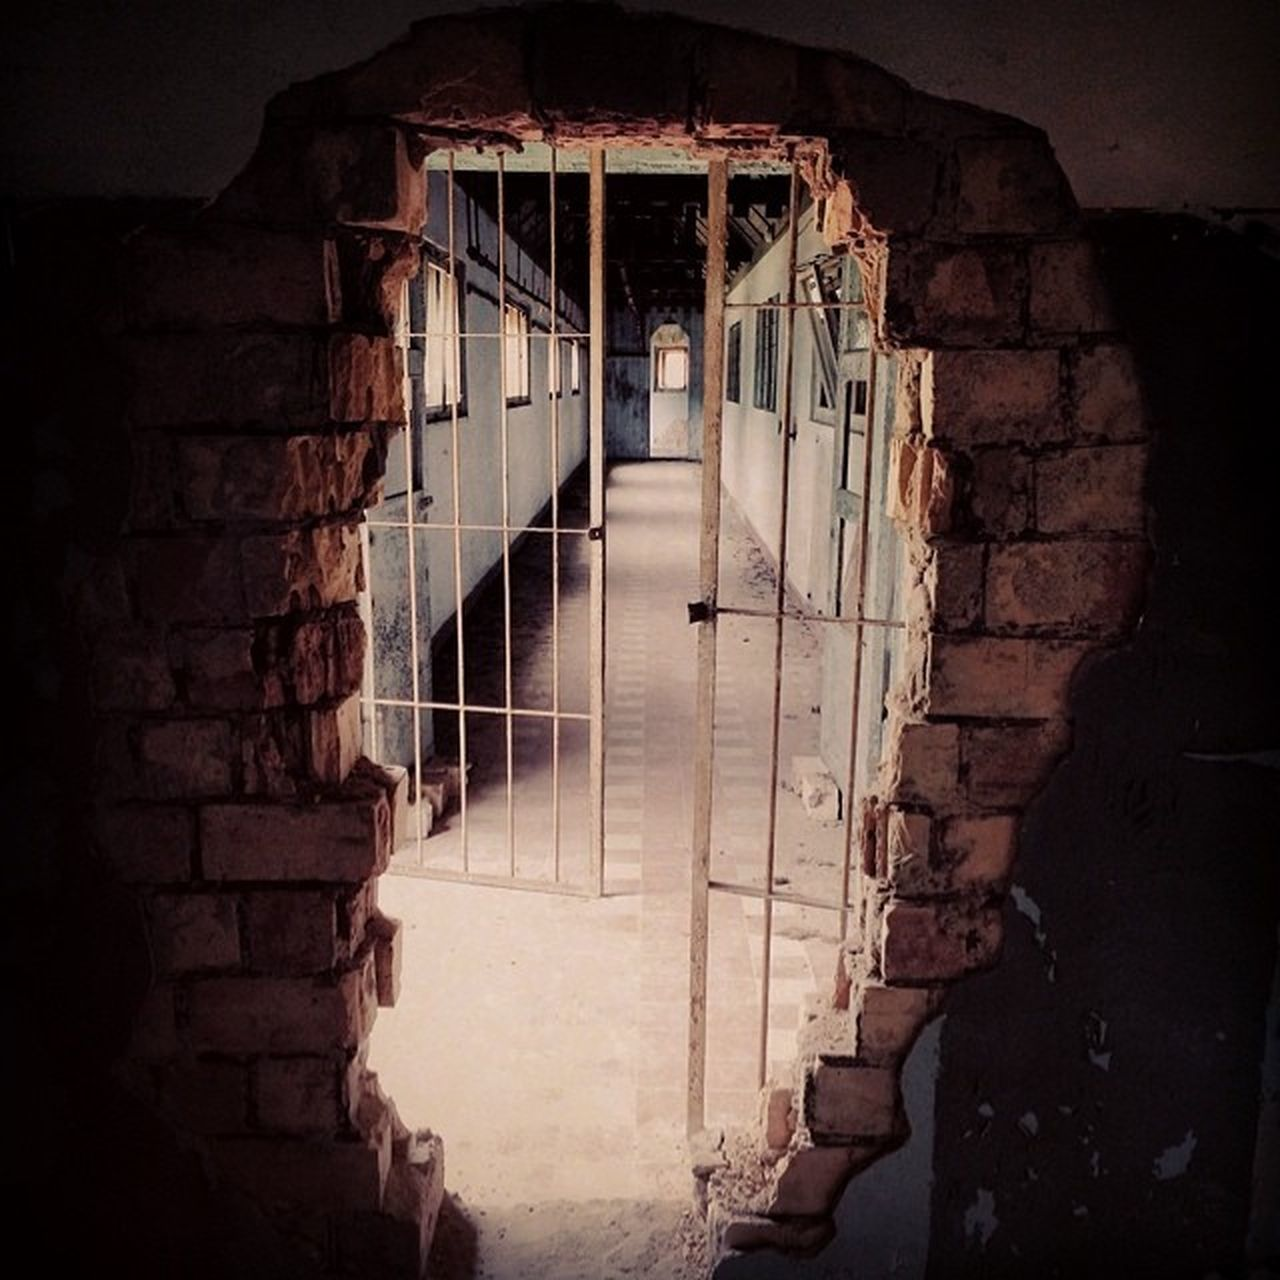 architecture, abandoned, window, brick wall, built structure, indoors, no people, day, prison